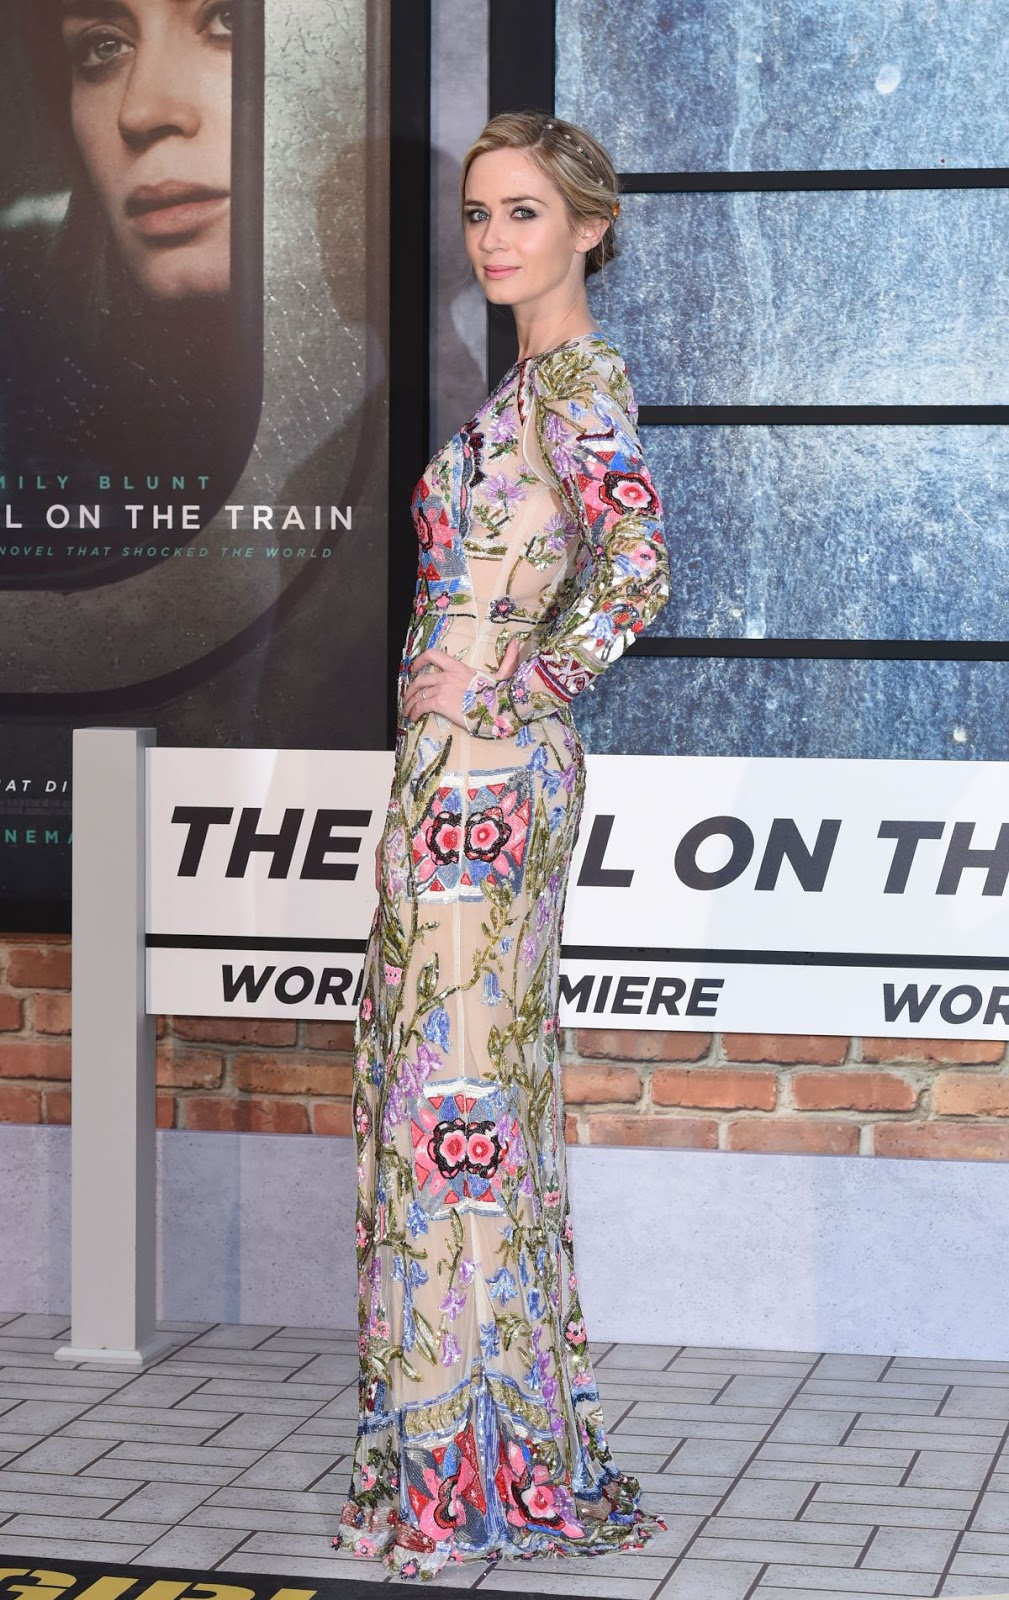 Emily Blunt at 'The Girl on the Train' Premiere in London